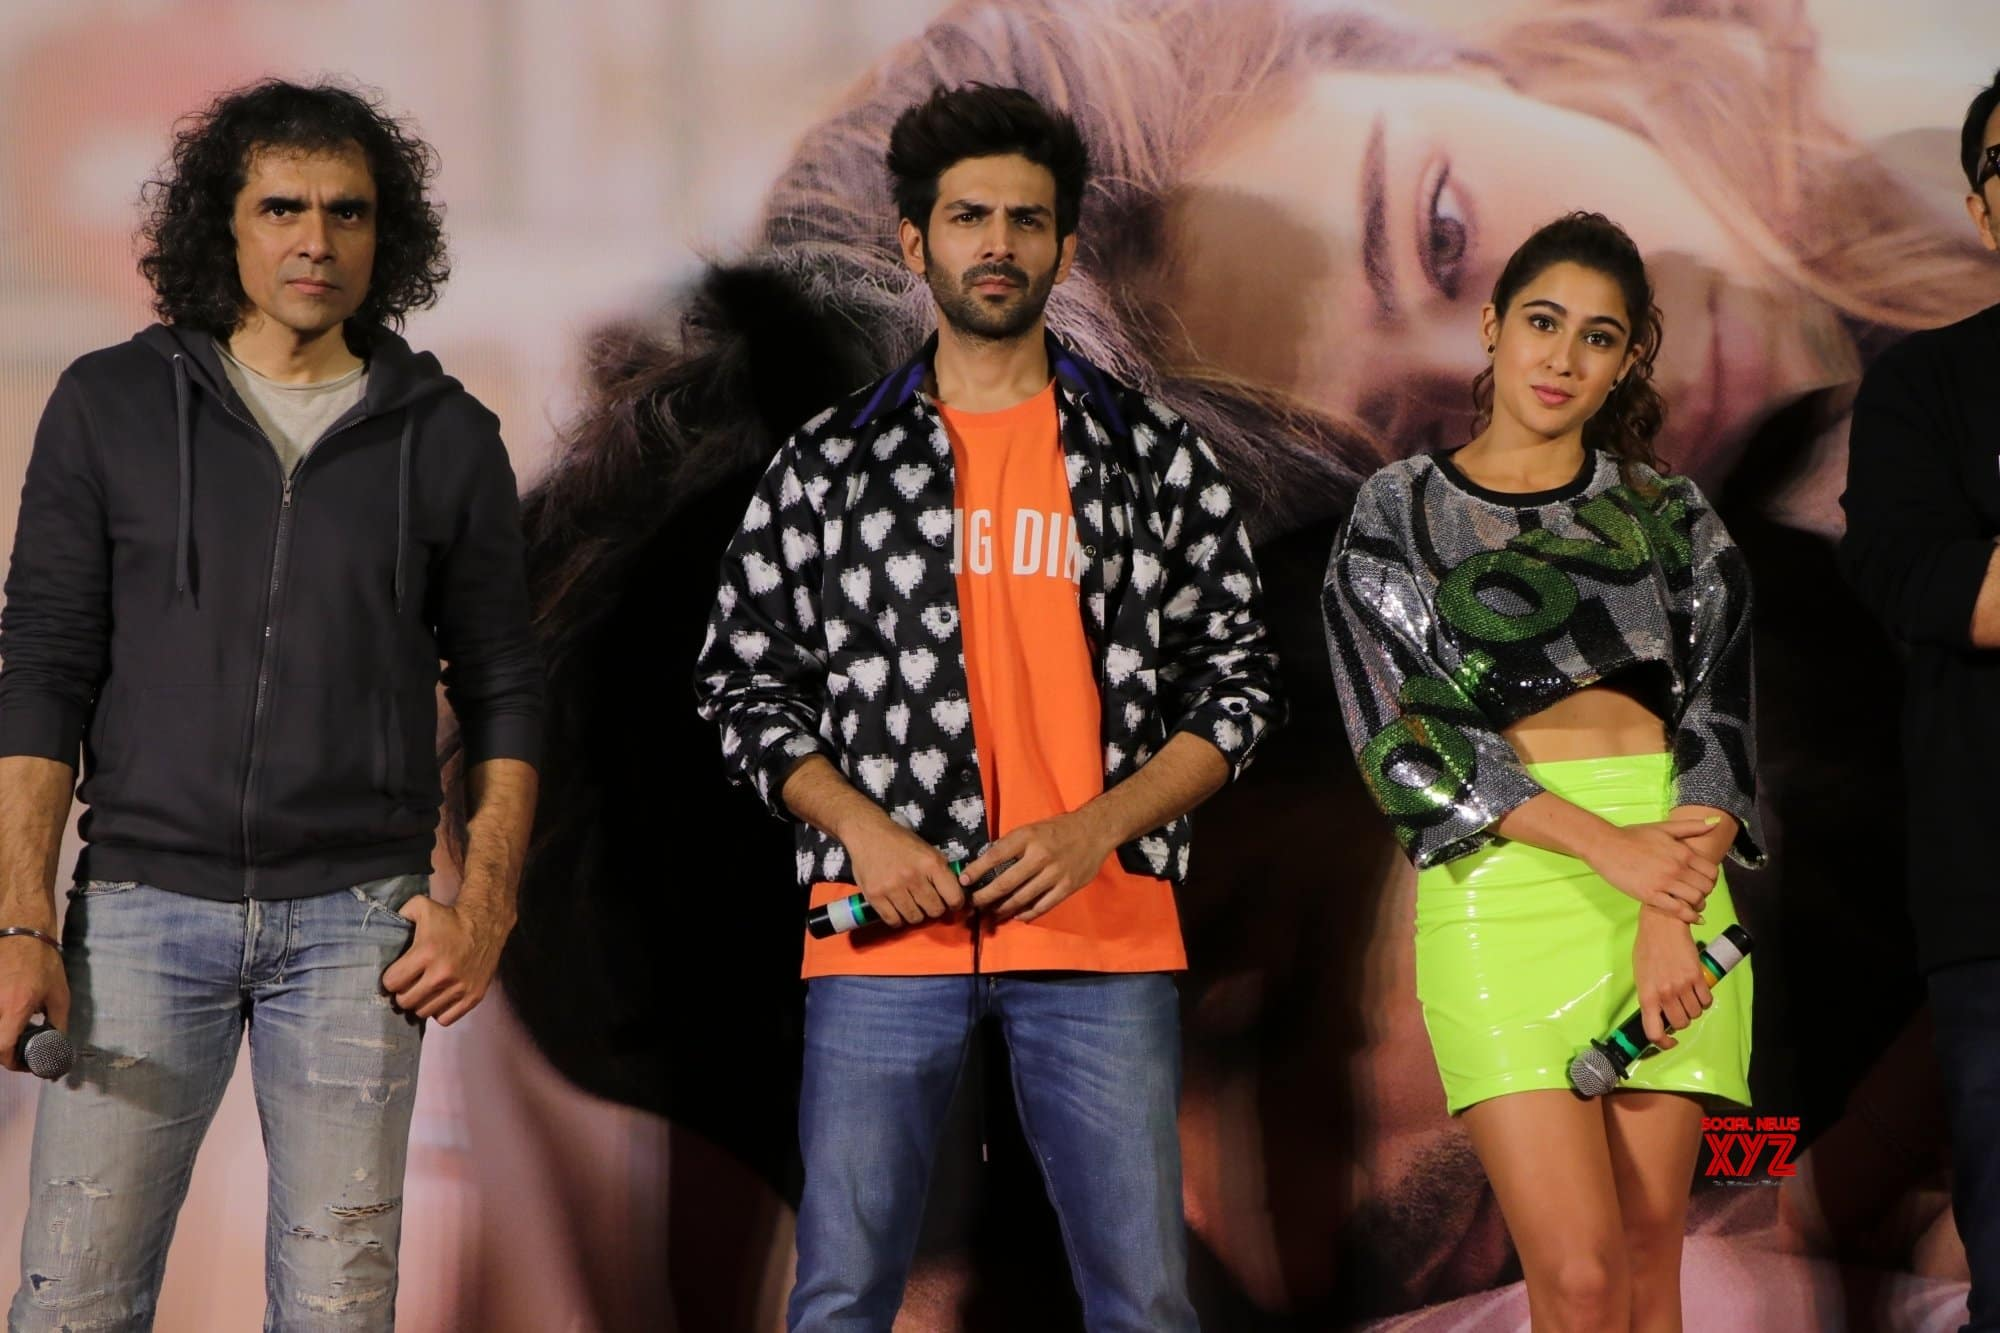 EXCLUSIVE: I'd Rather Fail Than Play Safe, Says Filmmaker Imtiaz Ali On Love Aaj Kal's Debacle